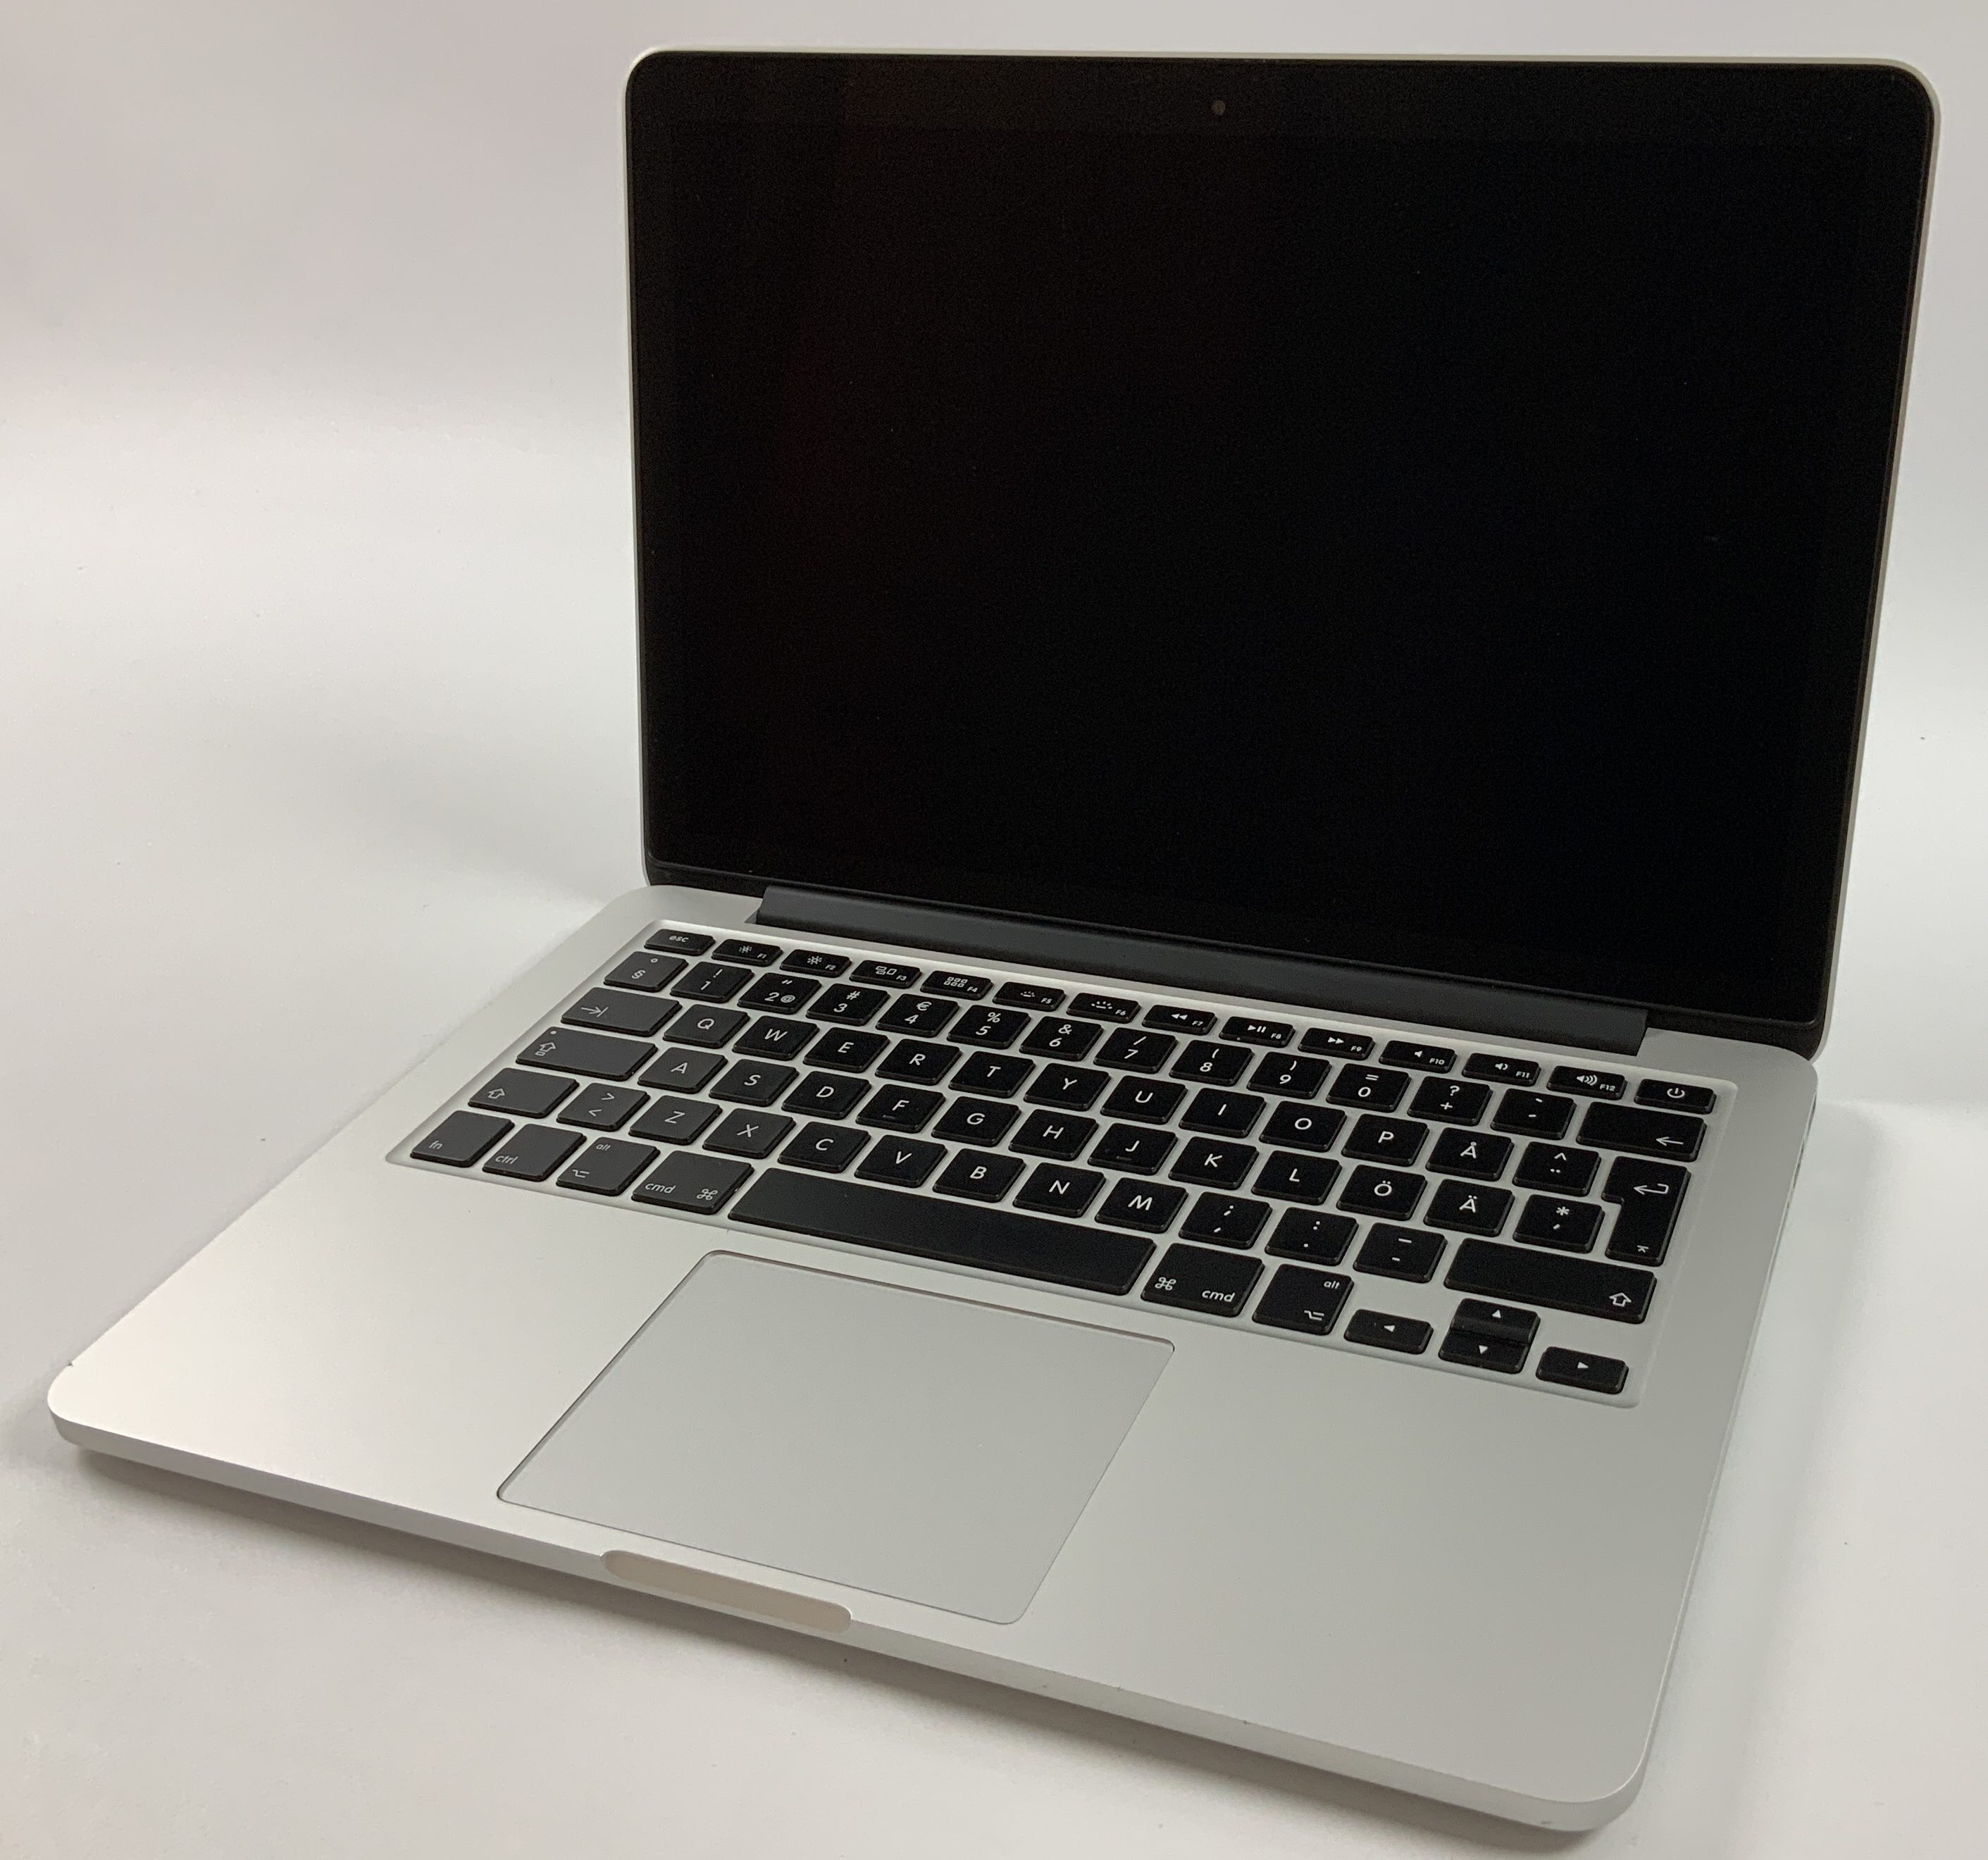 "MacBook Pro Retina 13"" Early 2015 (Intel Core i5 2.7 GHz 8 GB RAM 128 GB SSD), Intel Core i5 2.7 GHz, 8 GB RAM, 128 GB SSD, image 1"